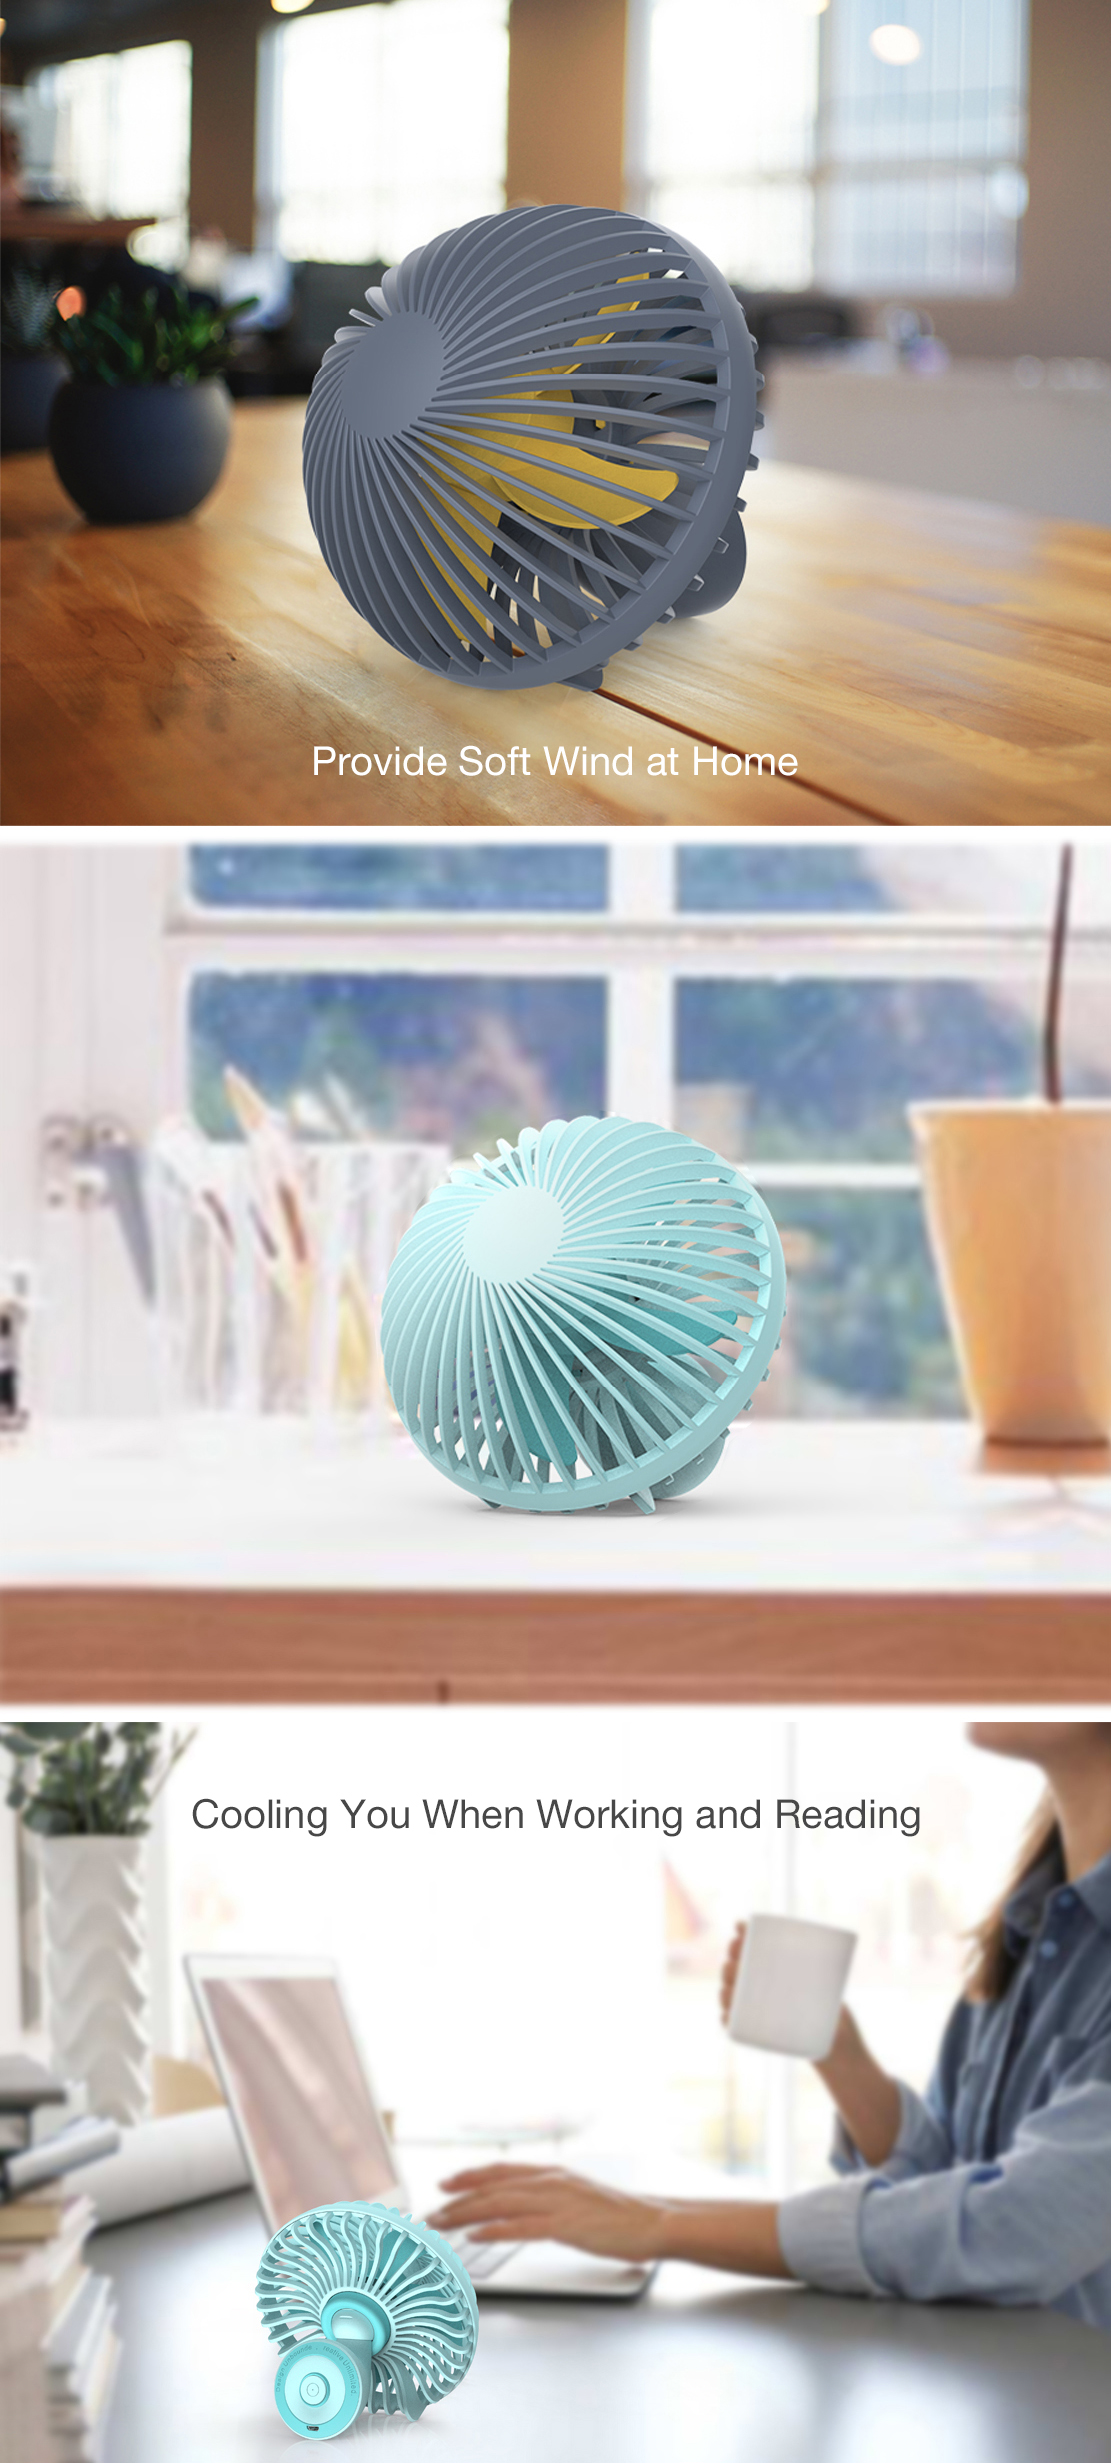 Loskii HF-200 Portable Mini Electronic Desktop Mushroom Shape Summer Cooling Fan 2 Grade Adjustment USB Charging Fan